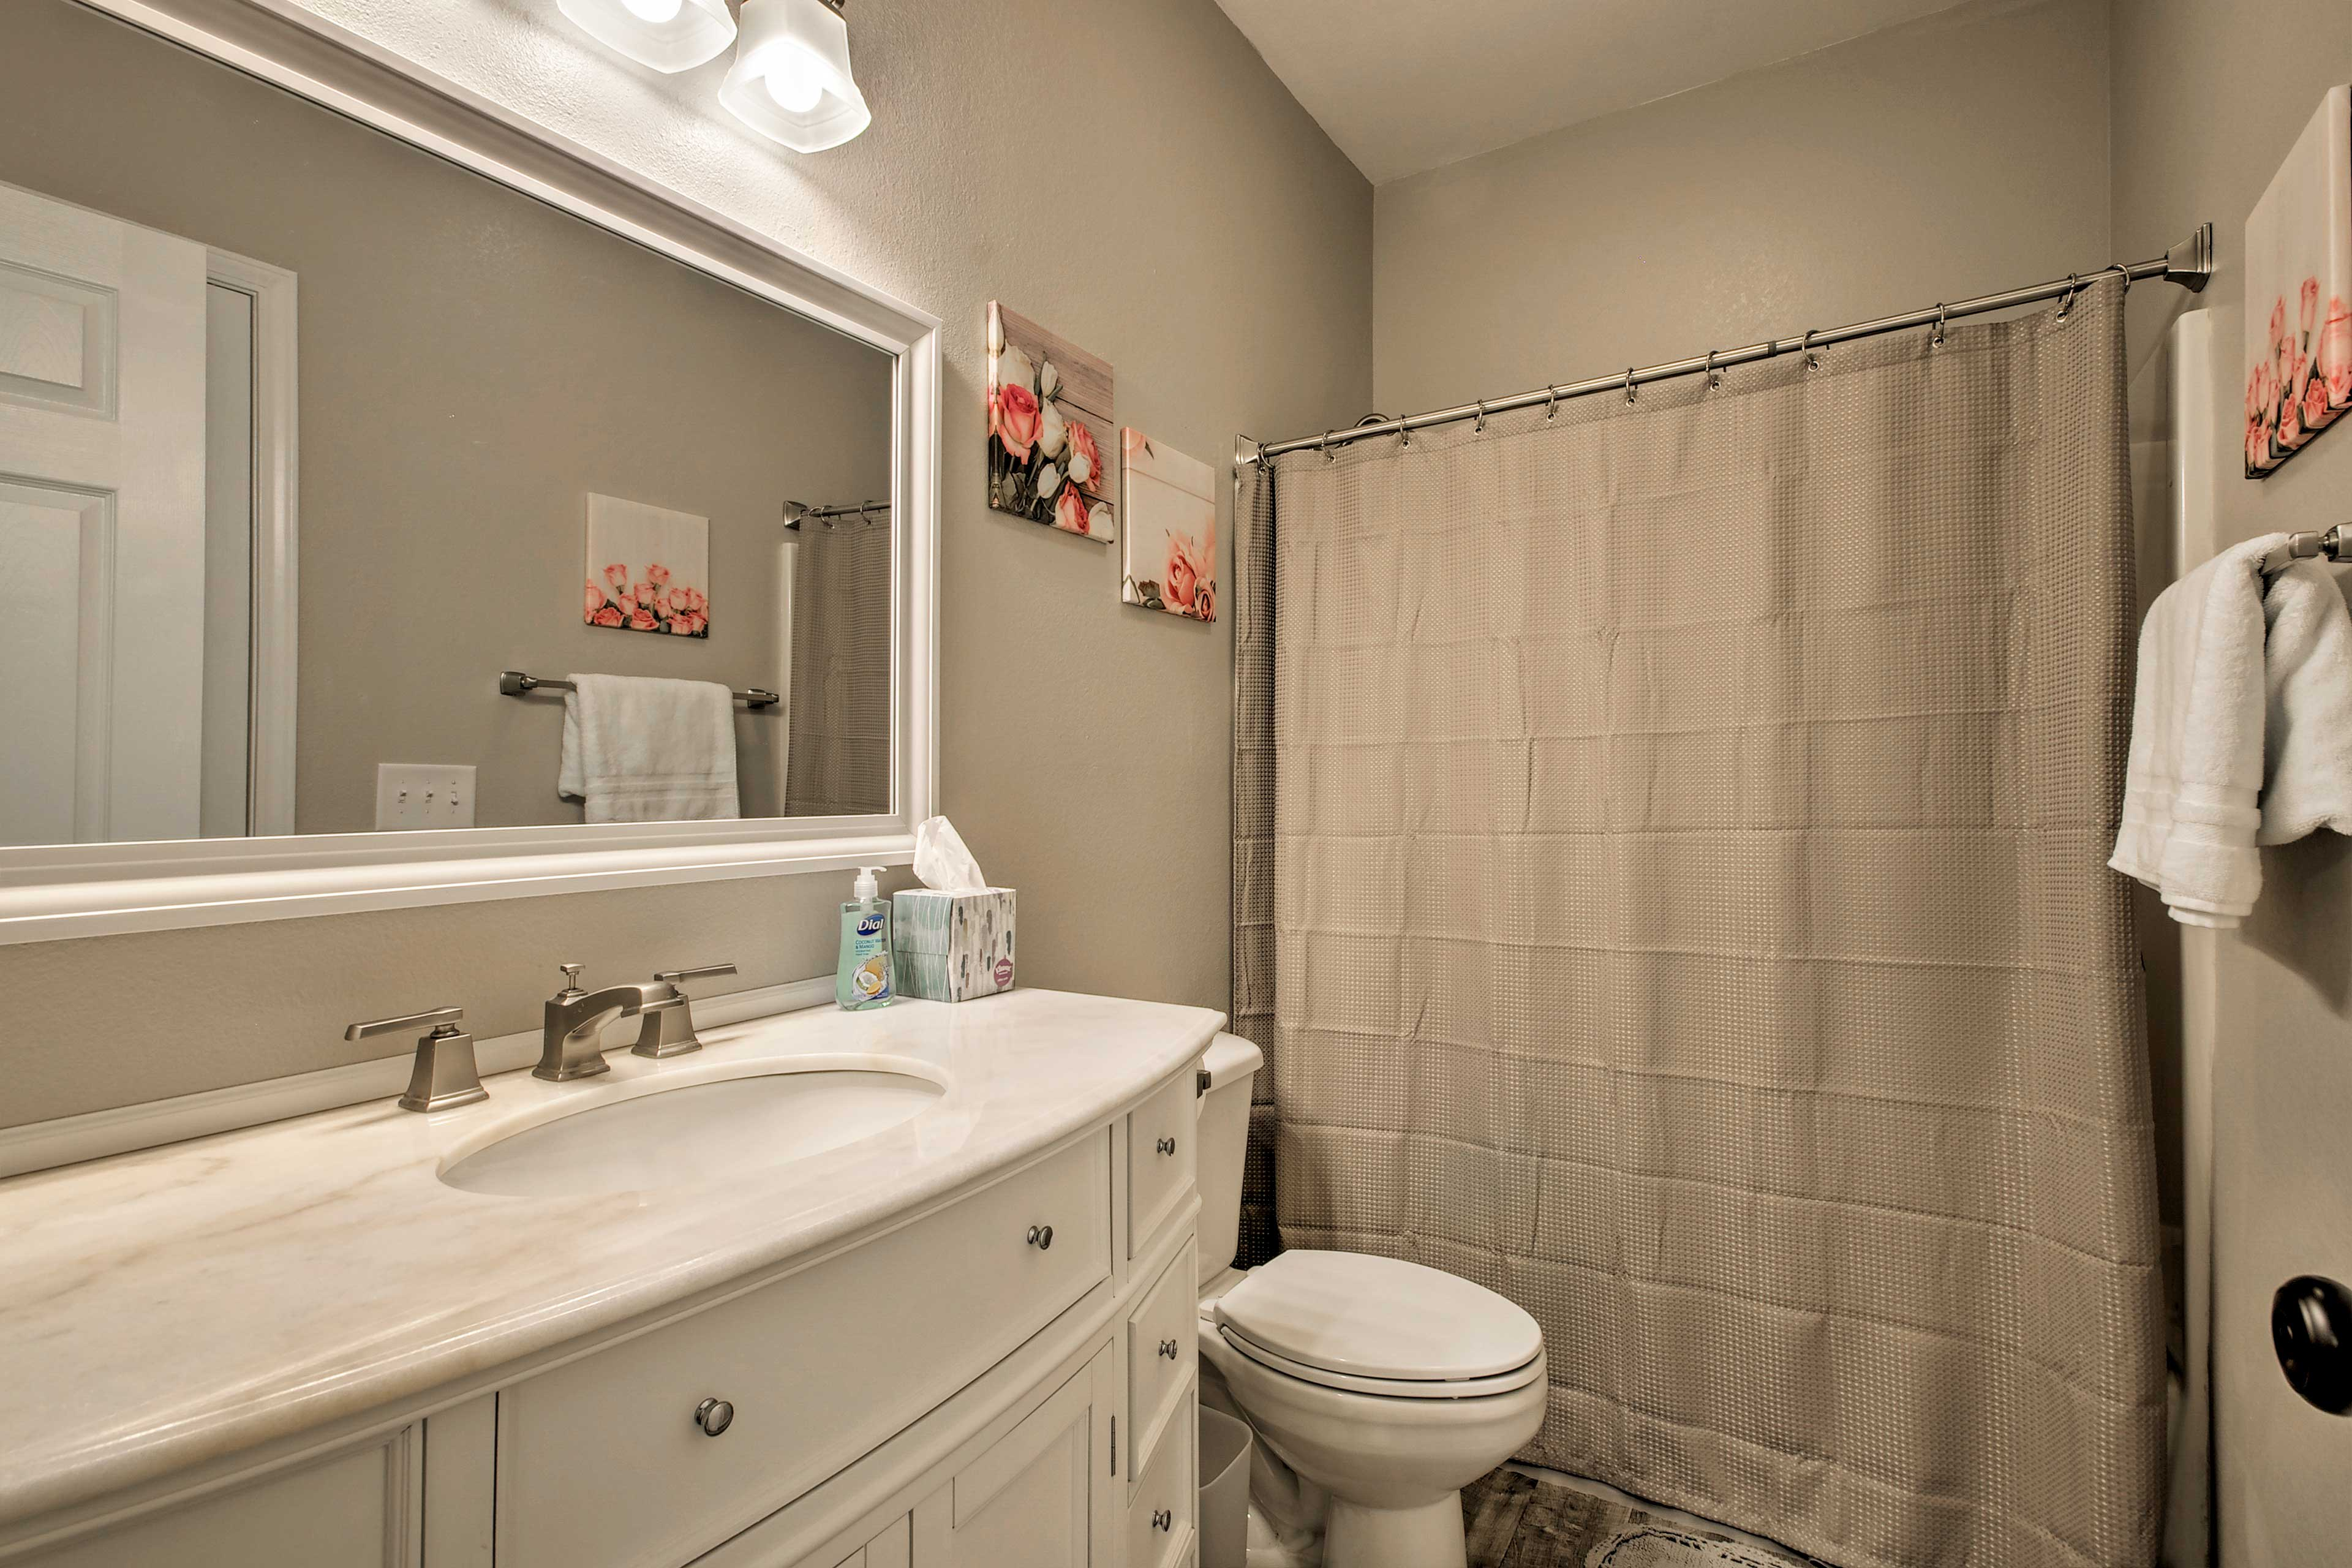 Get ready for the day in this bright bathroom.